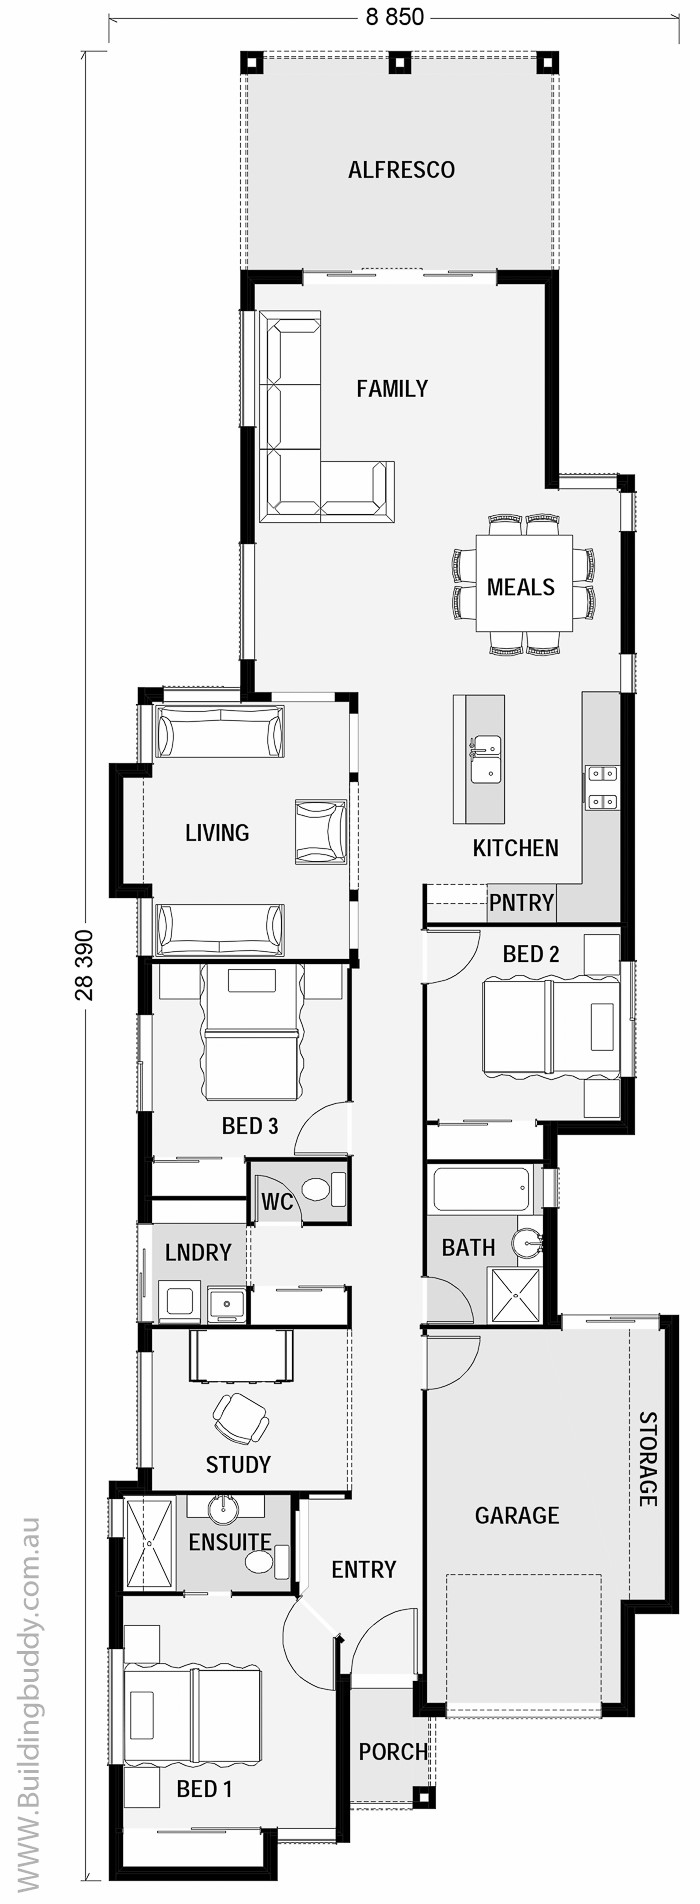 house plans home designs building prices builders small lot house plan connecting. Black Bedroom Furniture Sets. Home Design Ideas